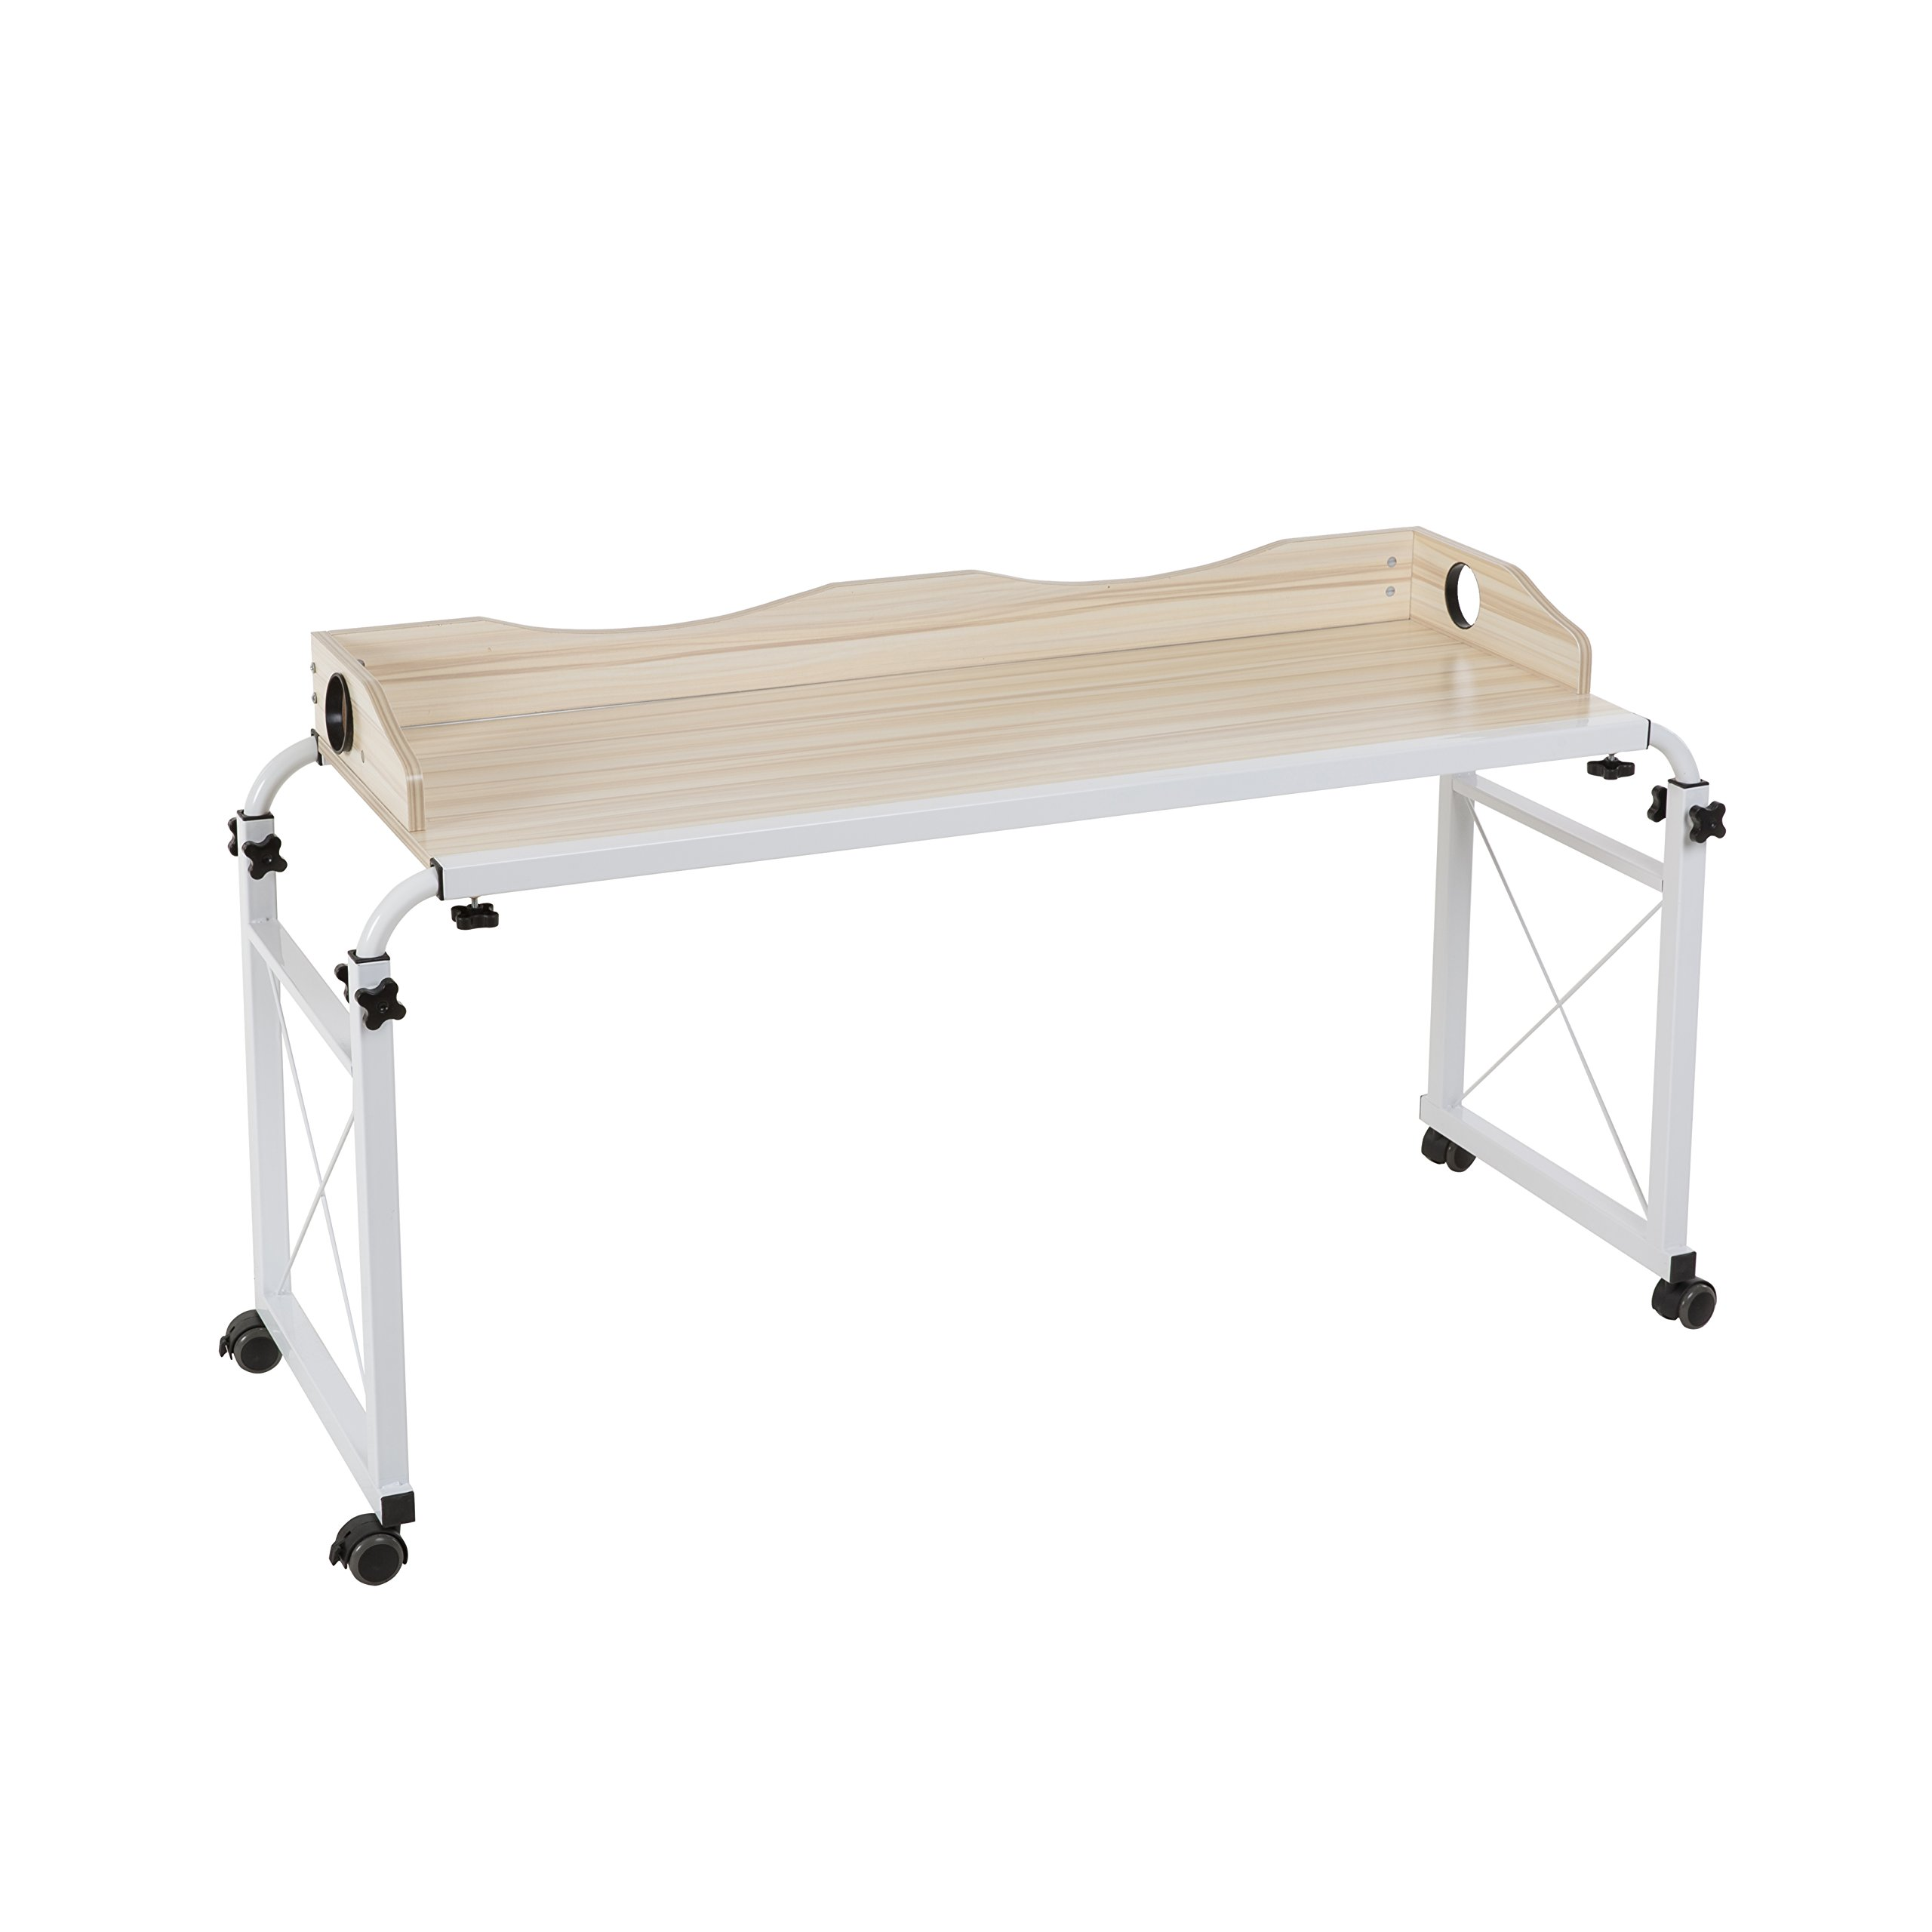 1.2m Happybuy 47 Inch Overbed Table with Wheels 1M Rolling Bed Table Mobile Over The Bed Table Laptop Cart Standing Workstation Computer Desk for Bed Hospital Home Office